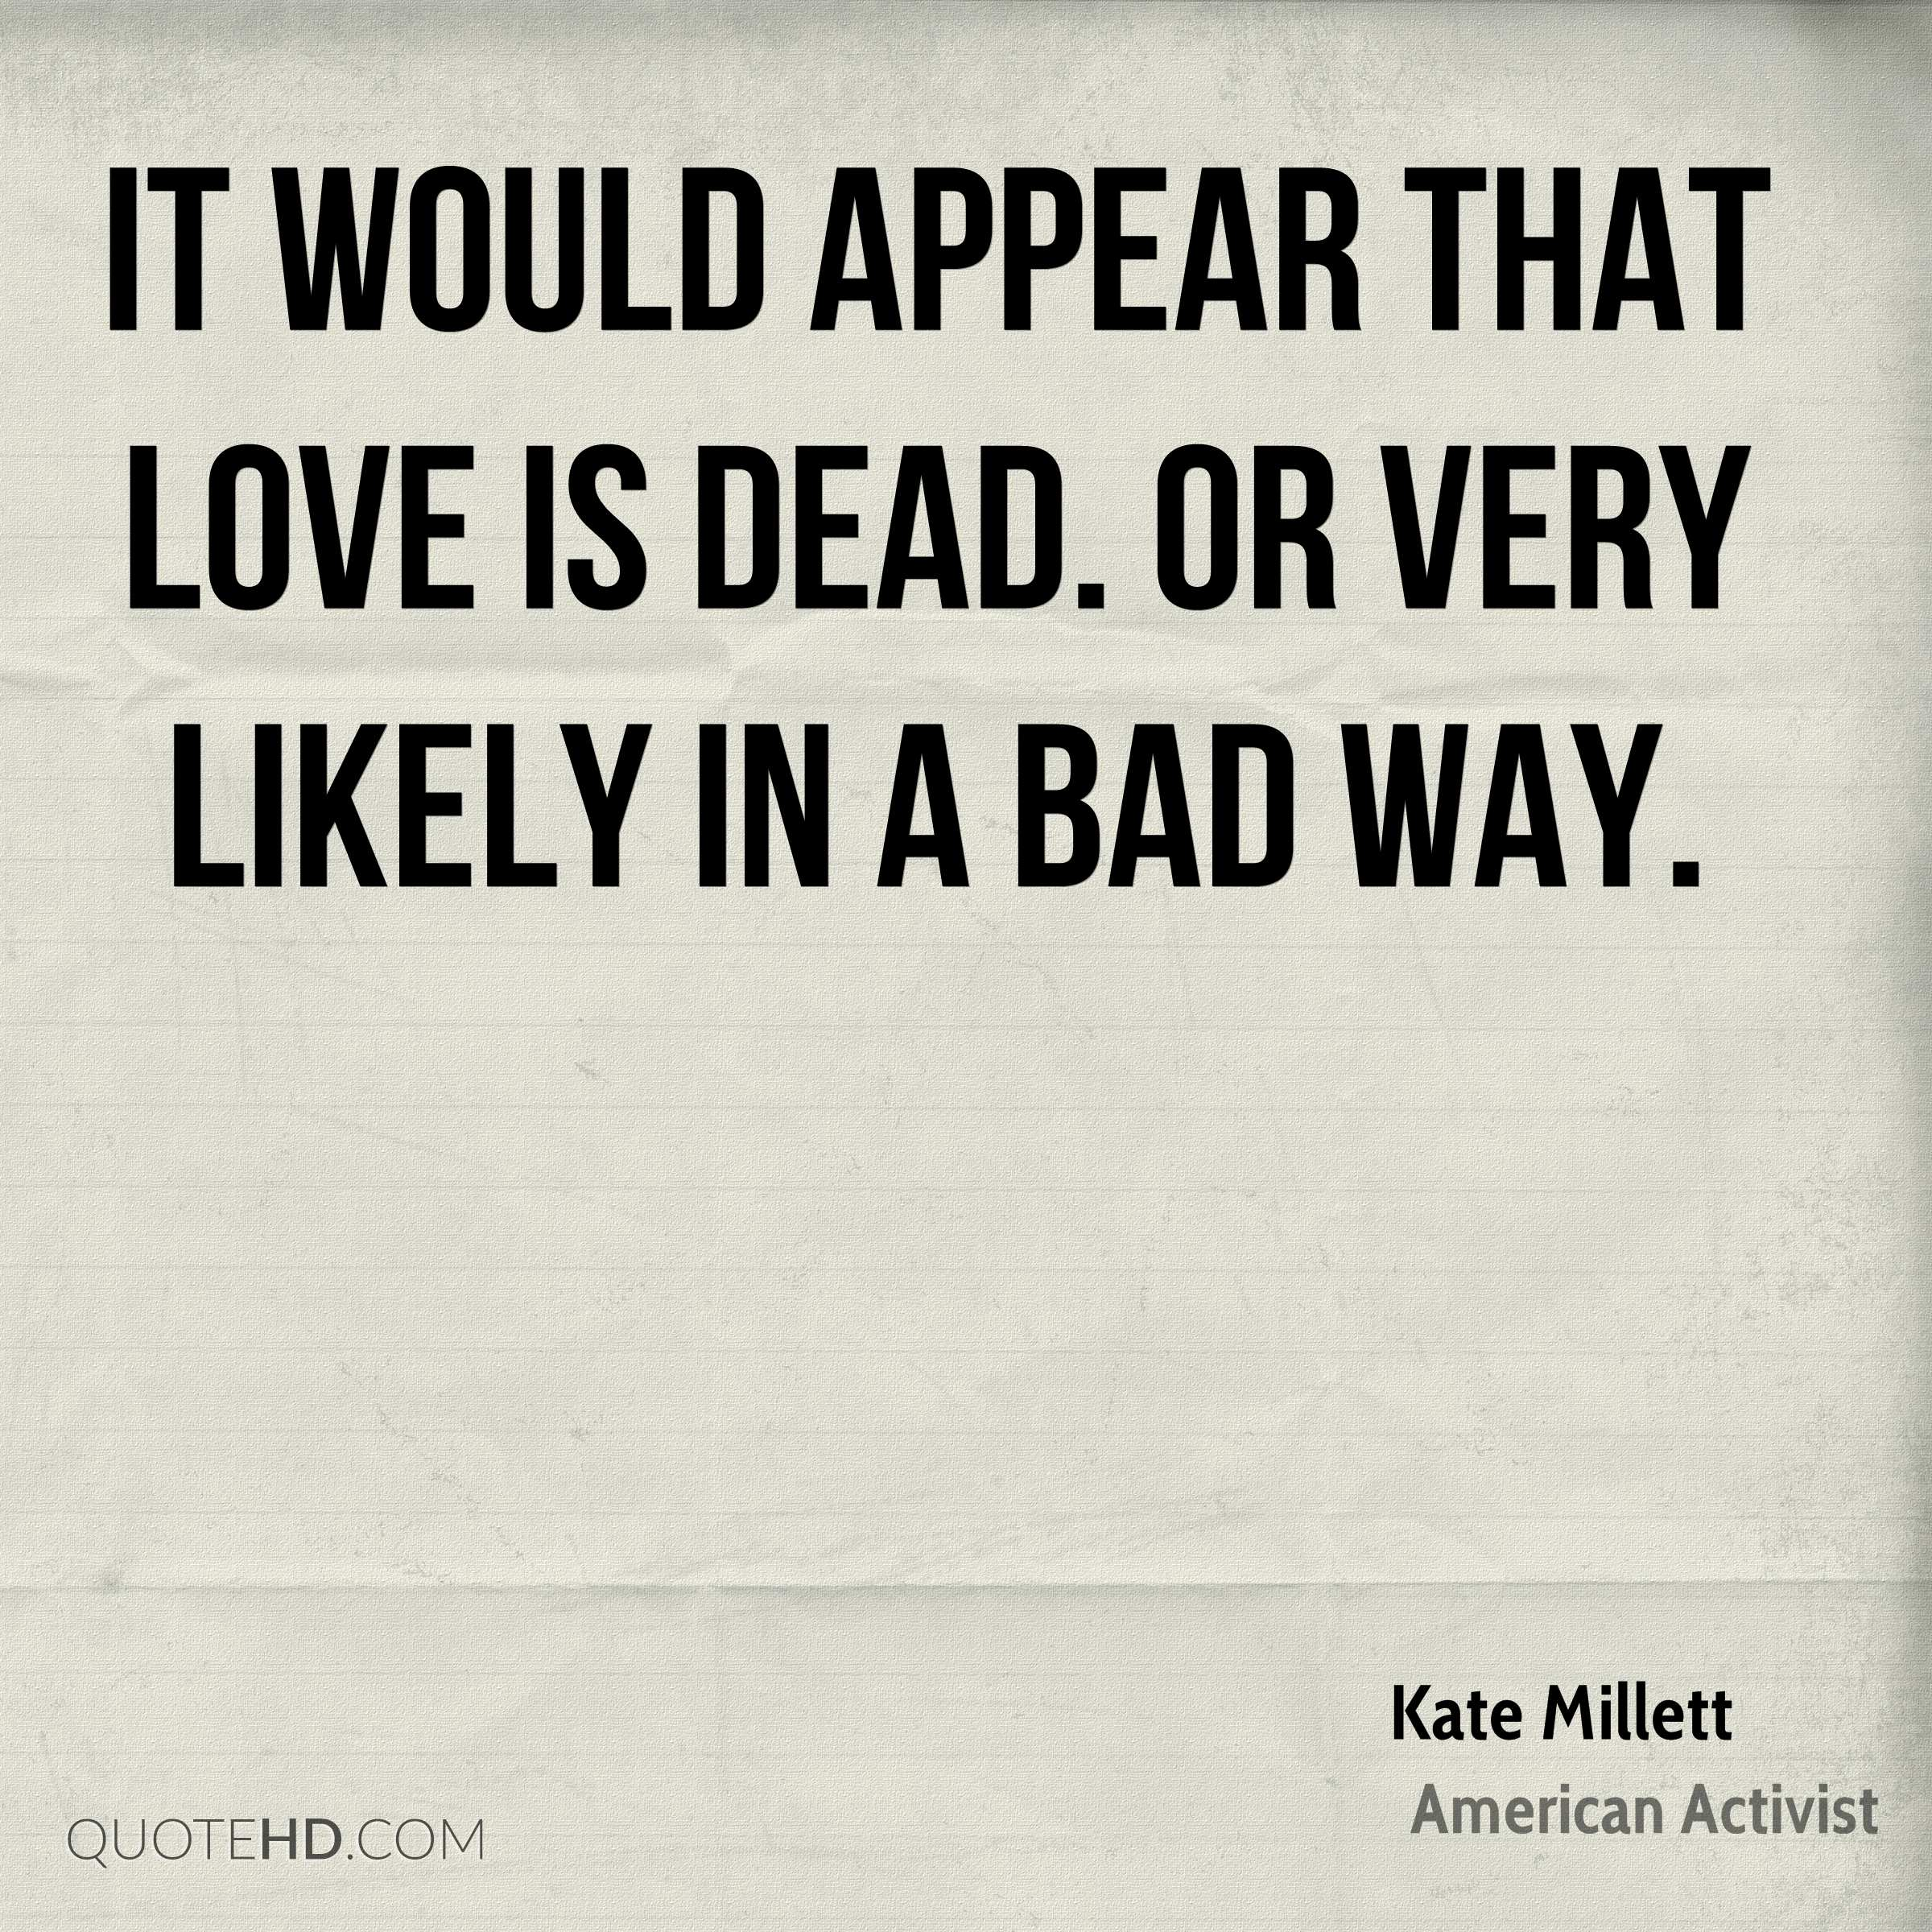 It would appear that love is dead very likely in a bad way